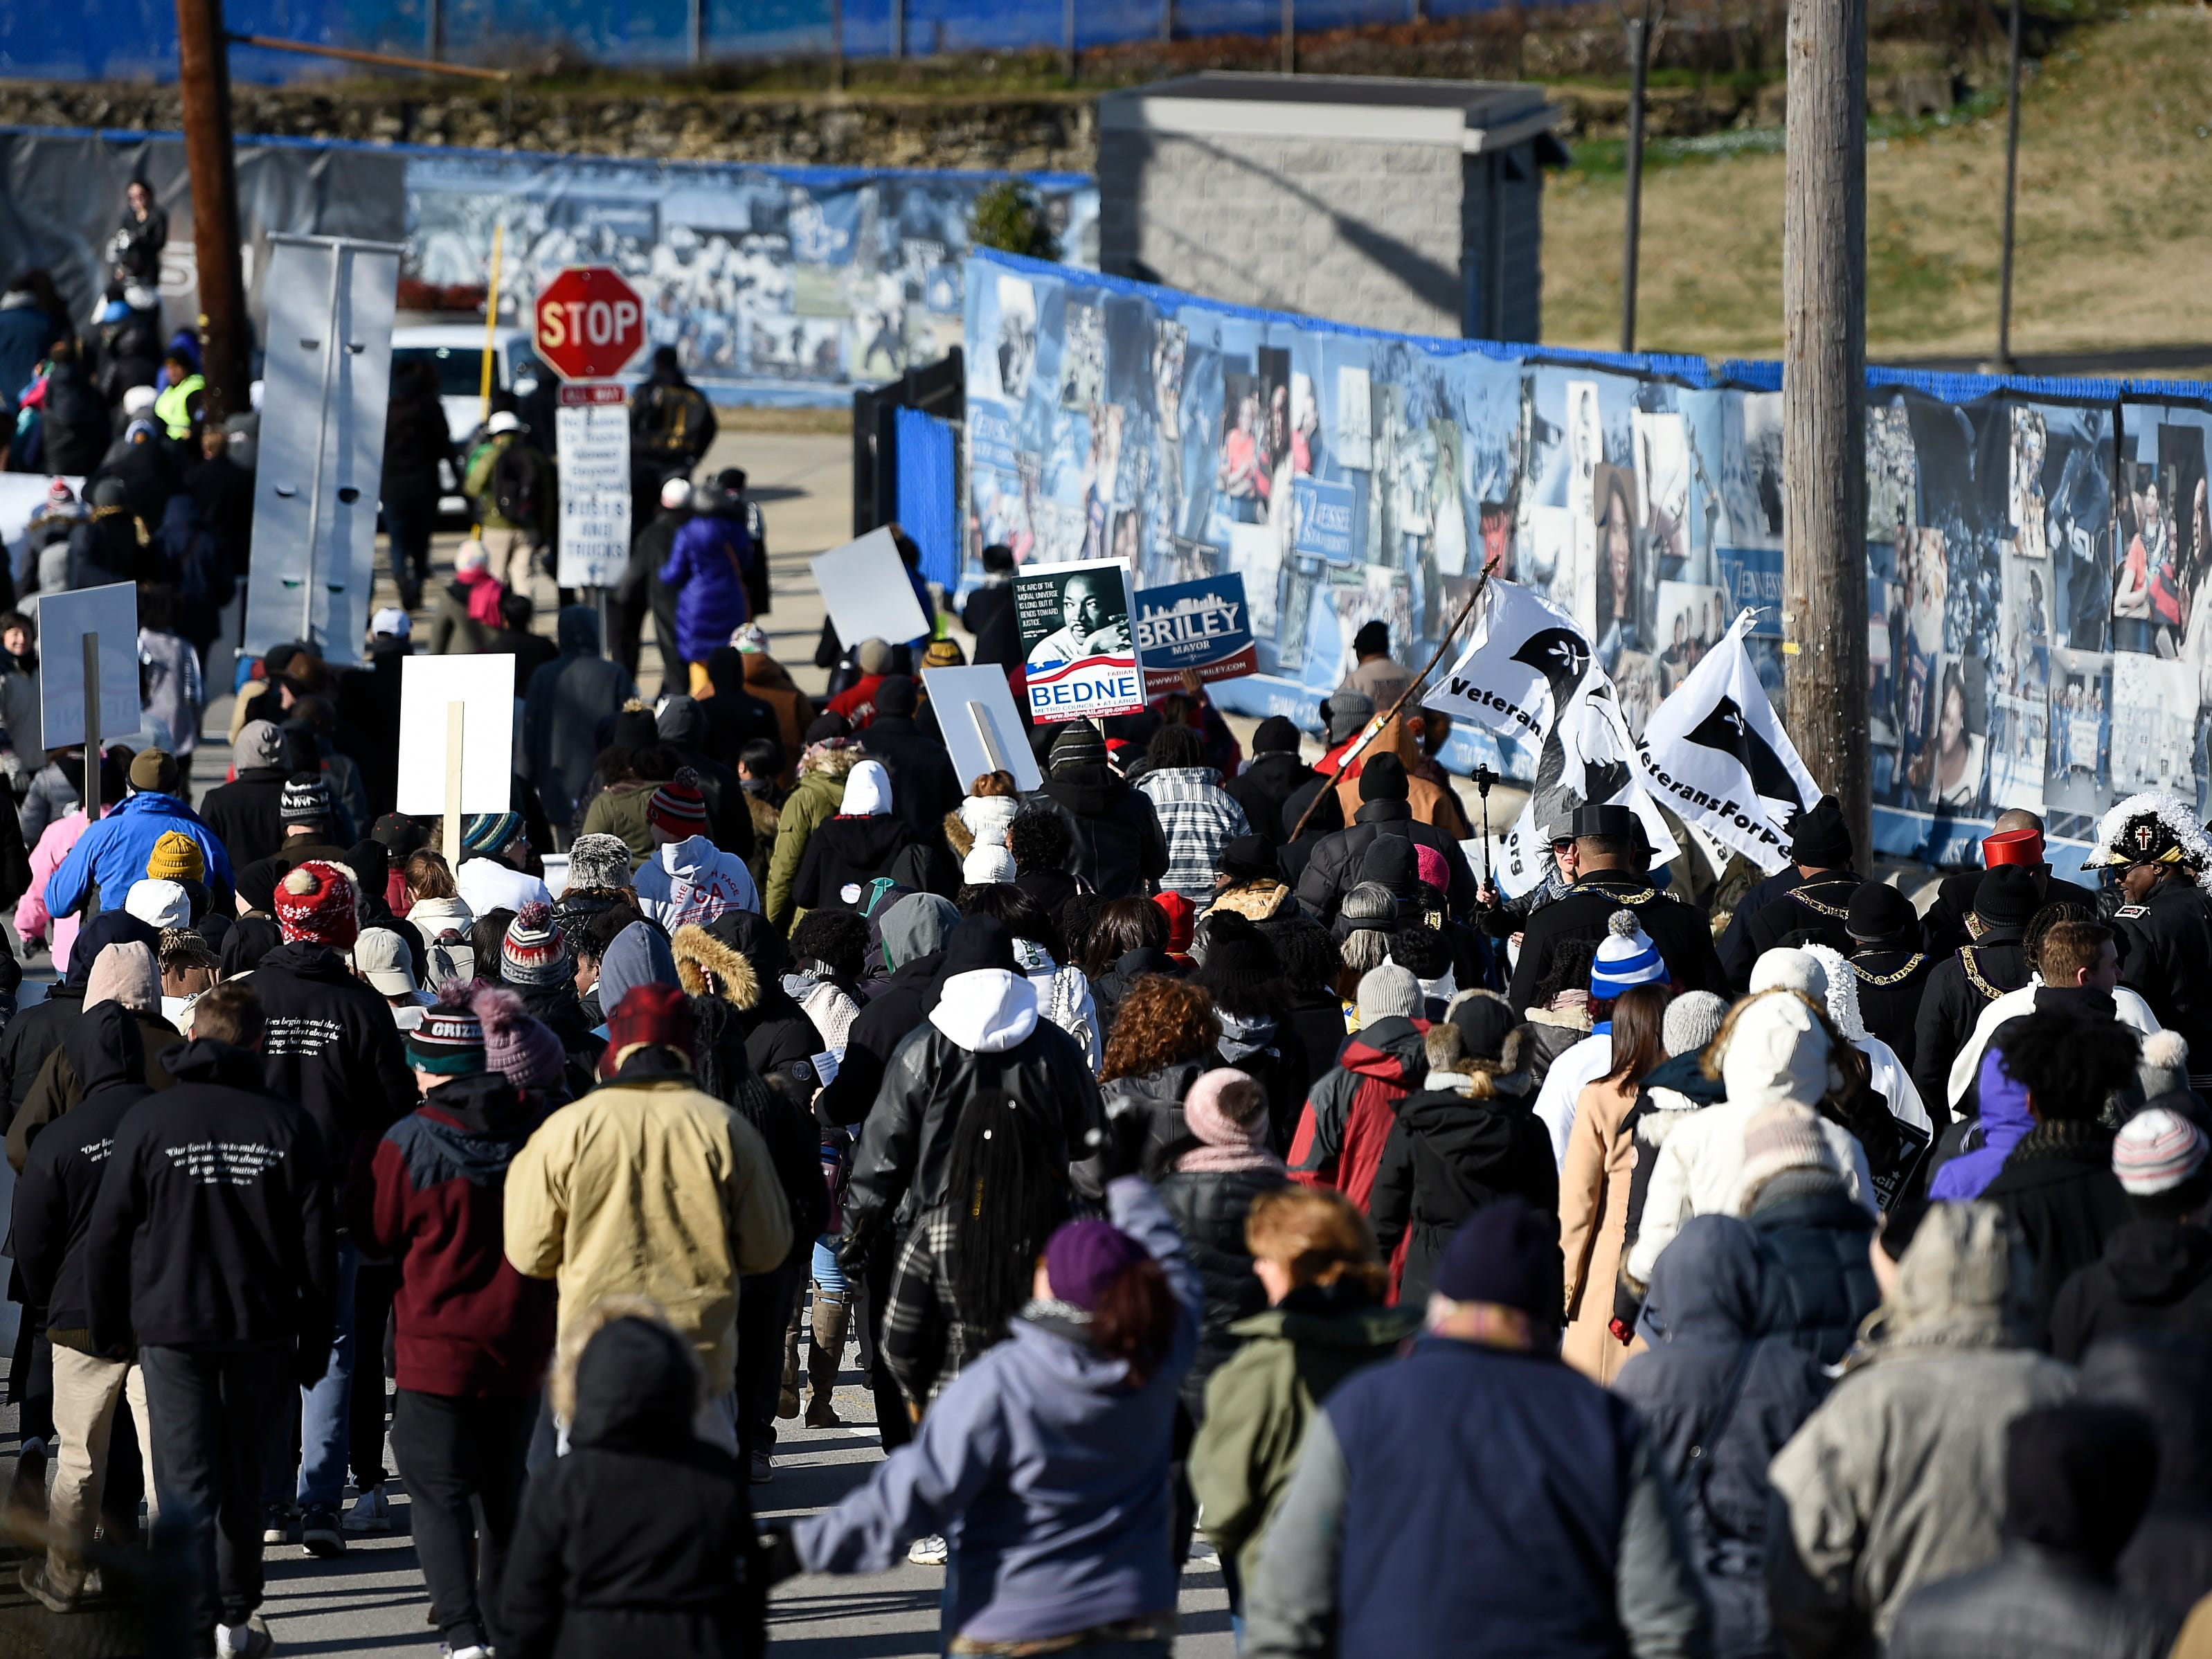 Marchers make their way up John Merritt Blvd. during the Martin Luther King Day March in Nashville.